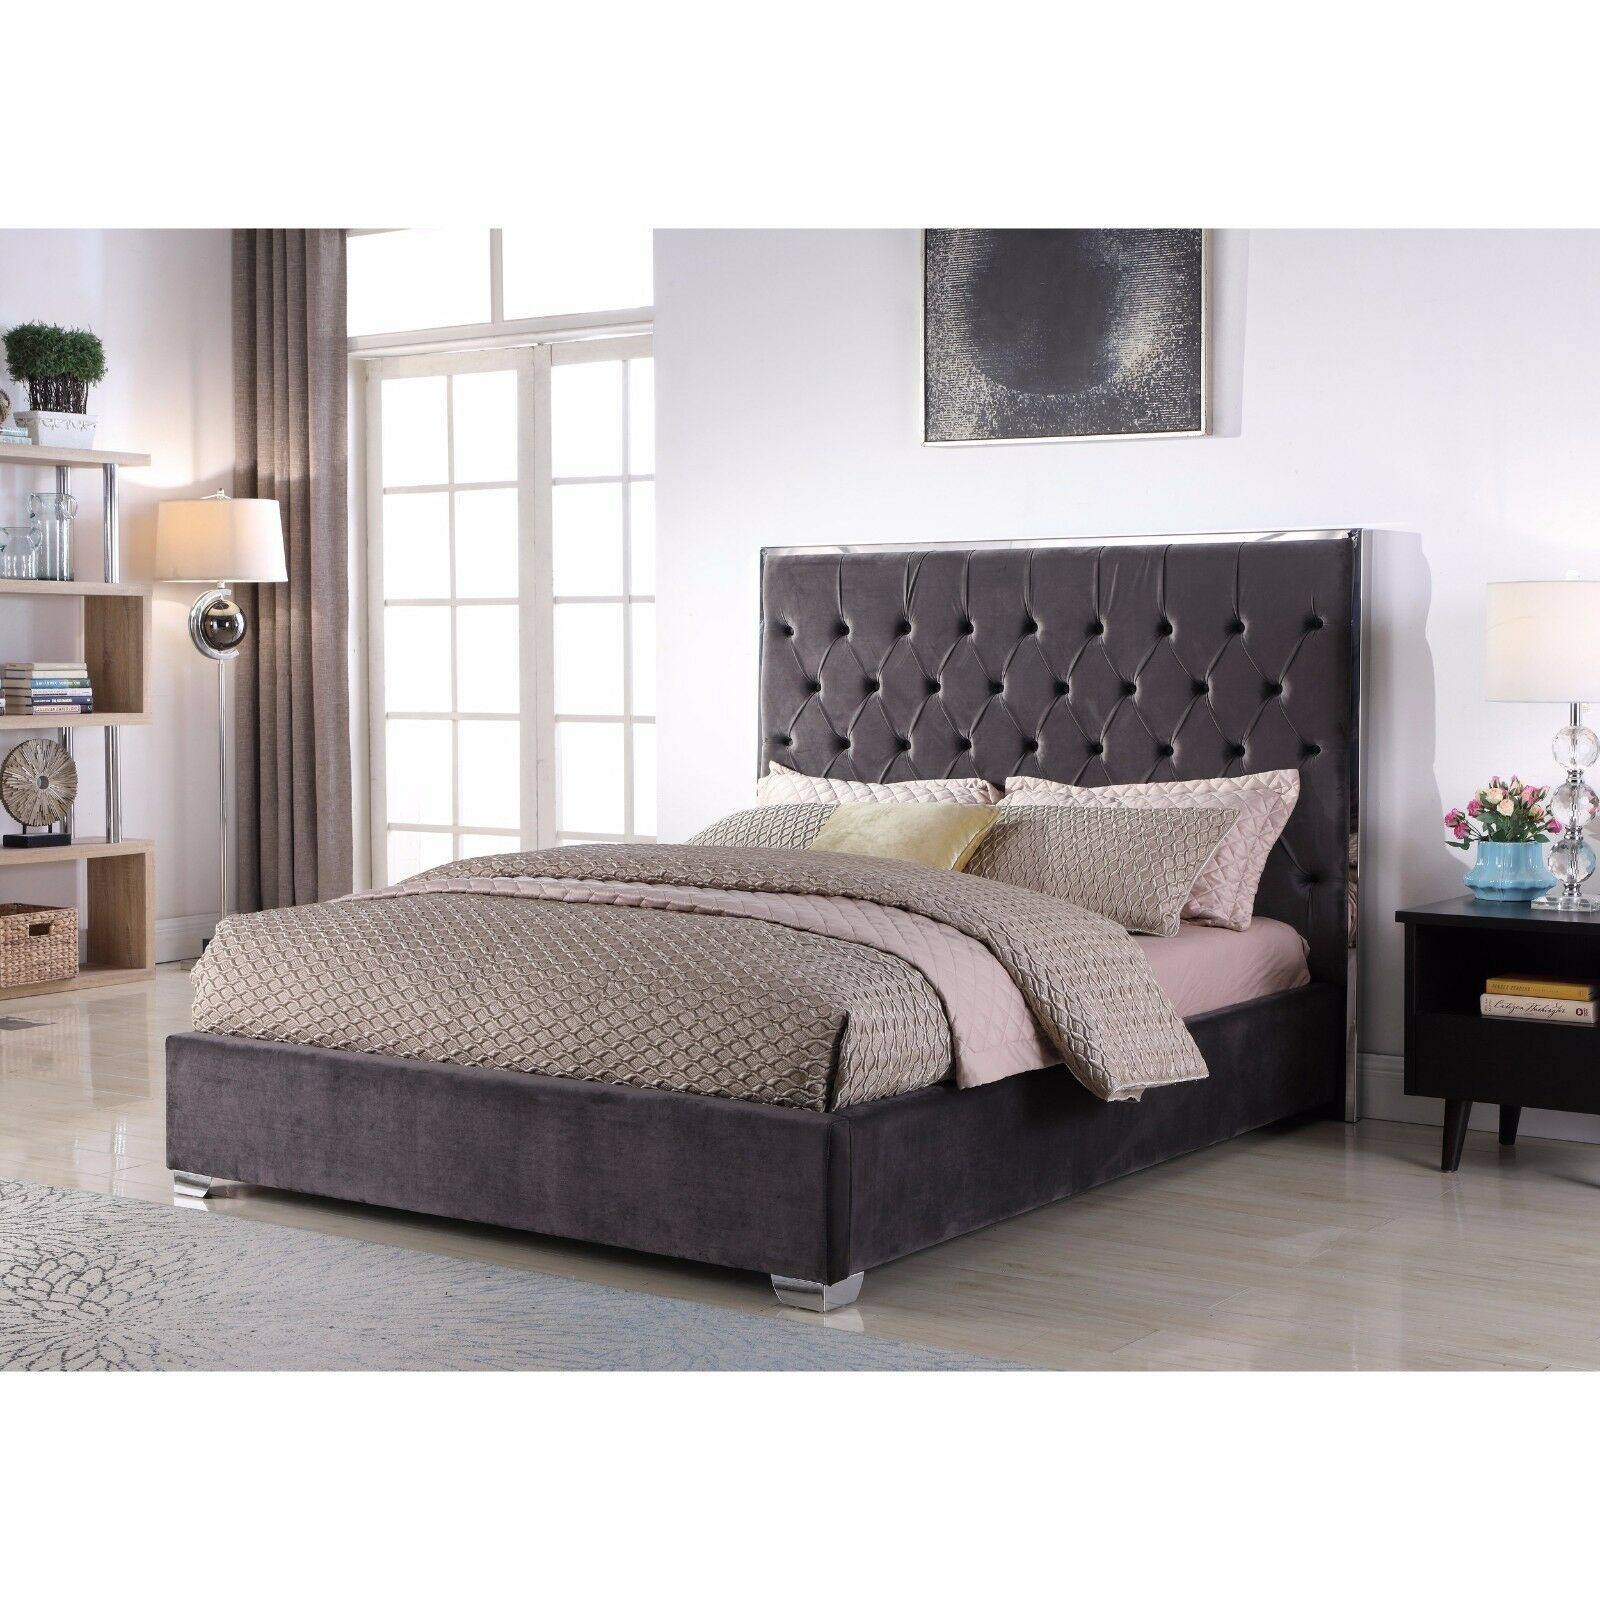 Chrome Legs 1piece Bedroom Set Eastern King Size Bed